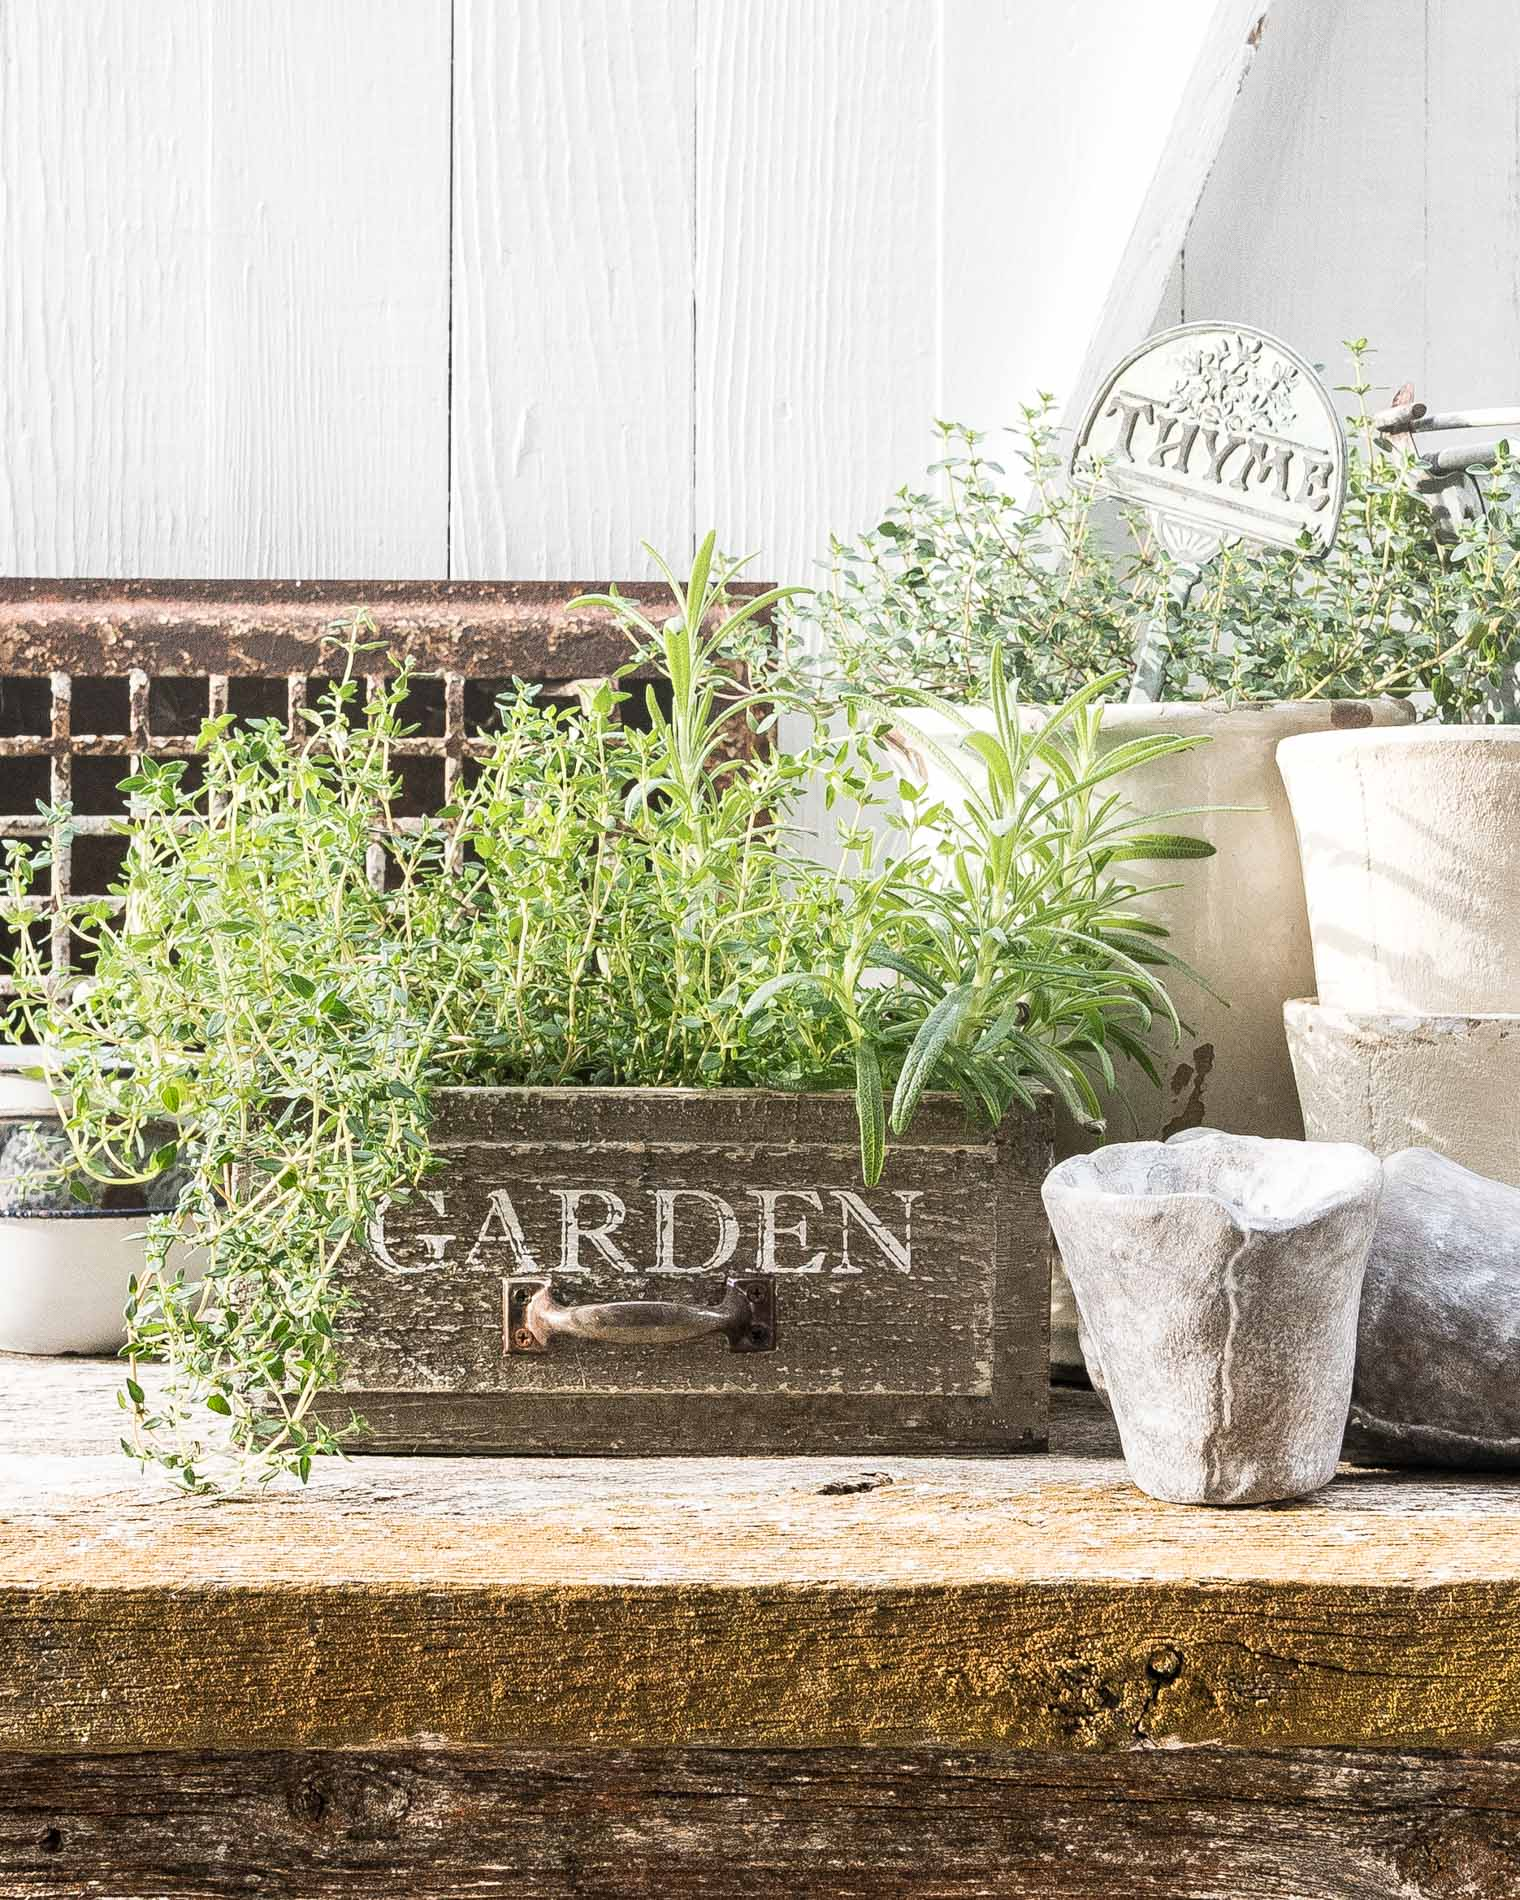 Garden Herbs, Five Things Friday, Keeping With the Times